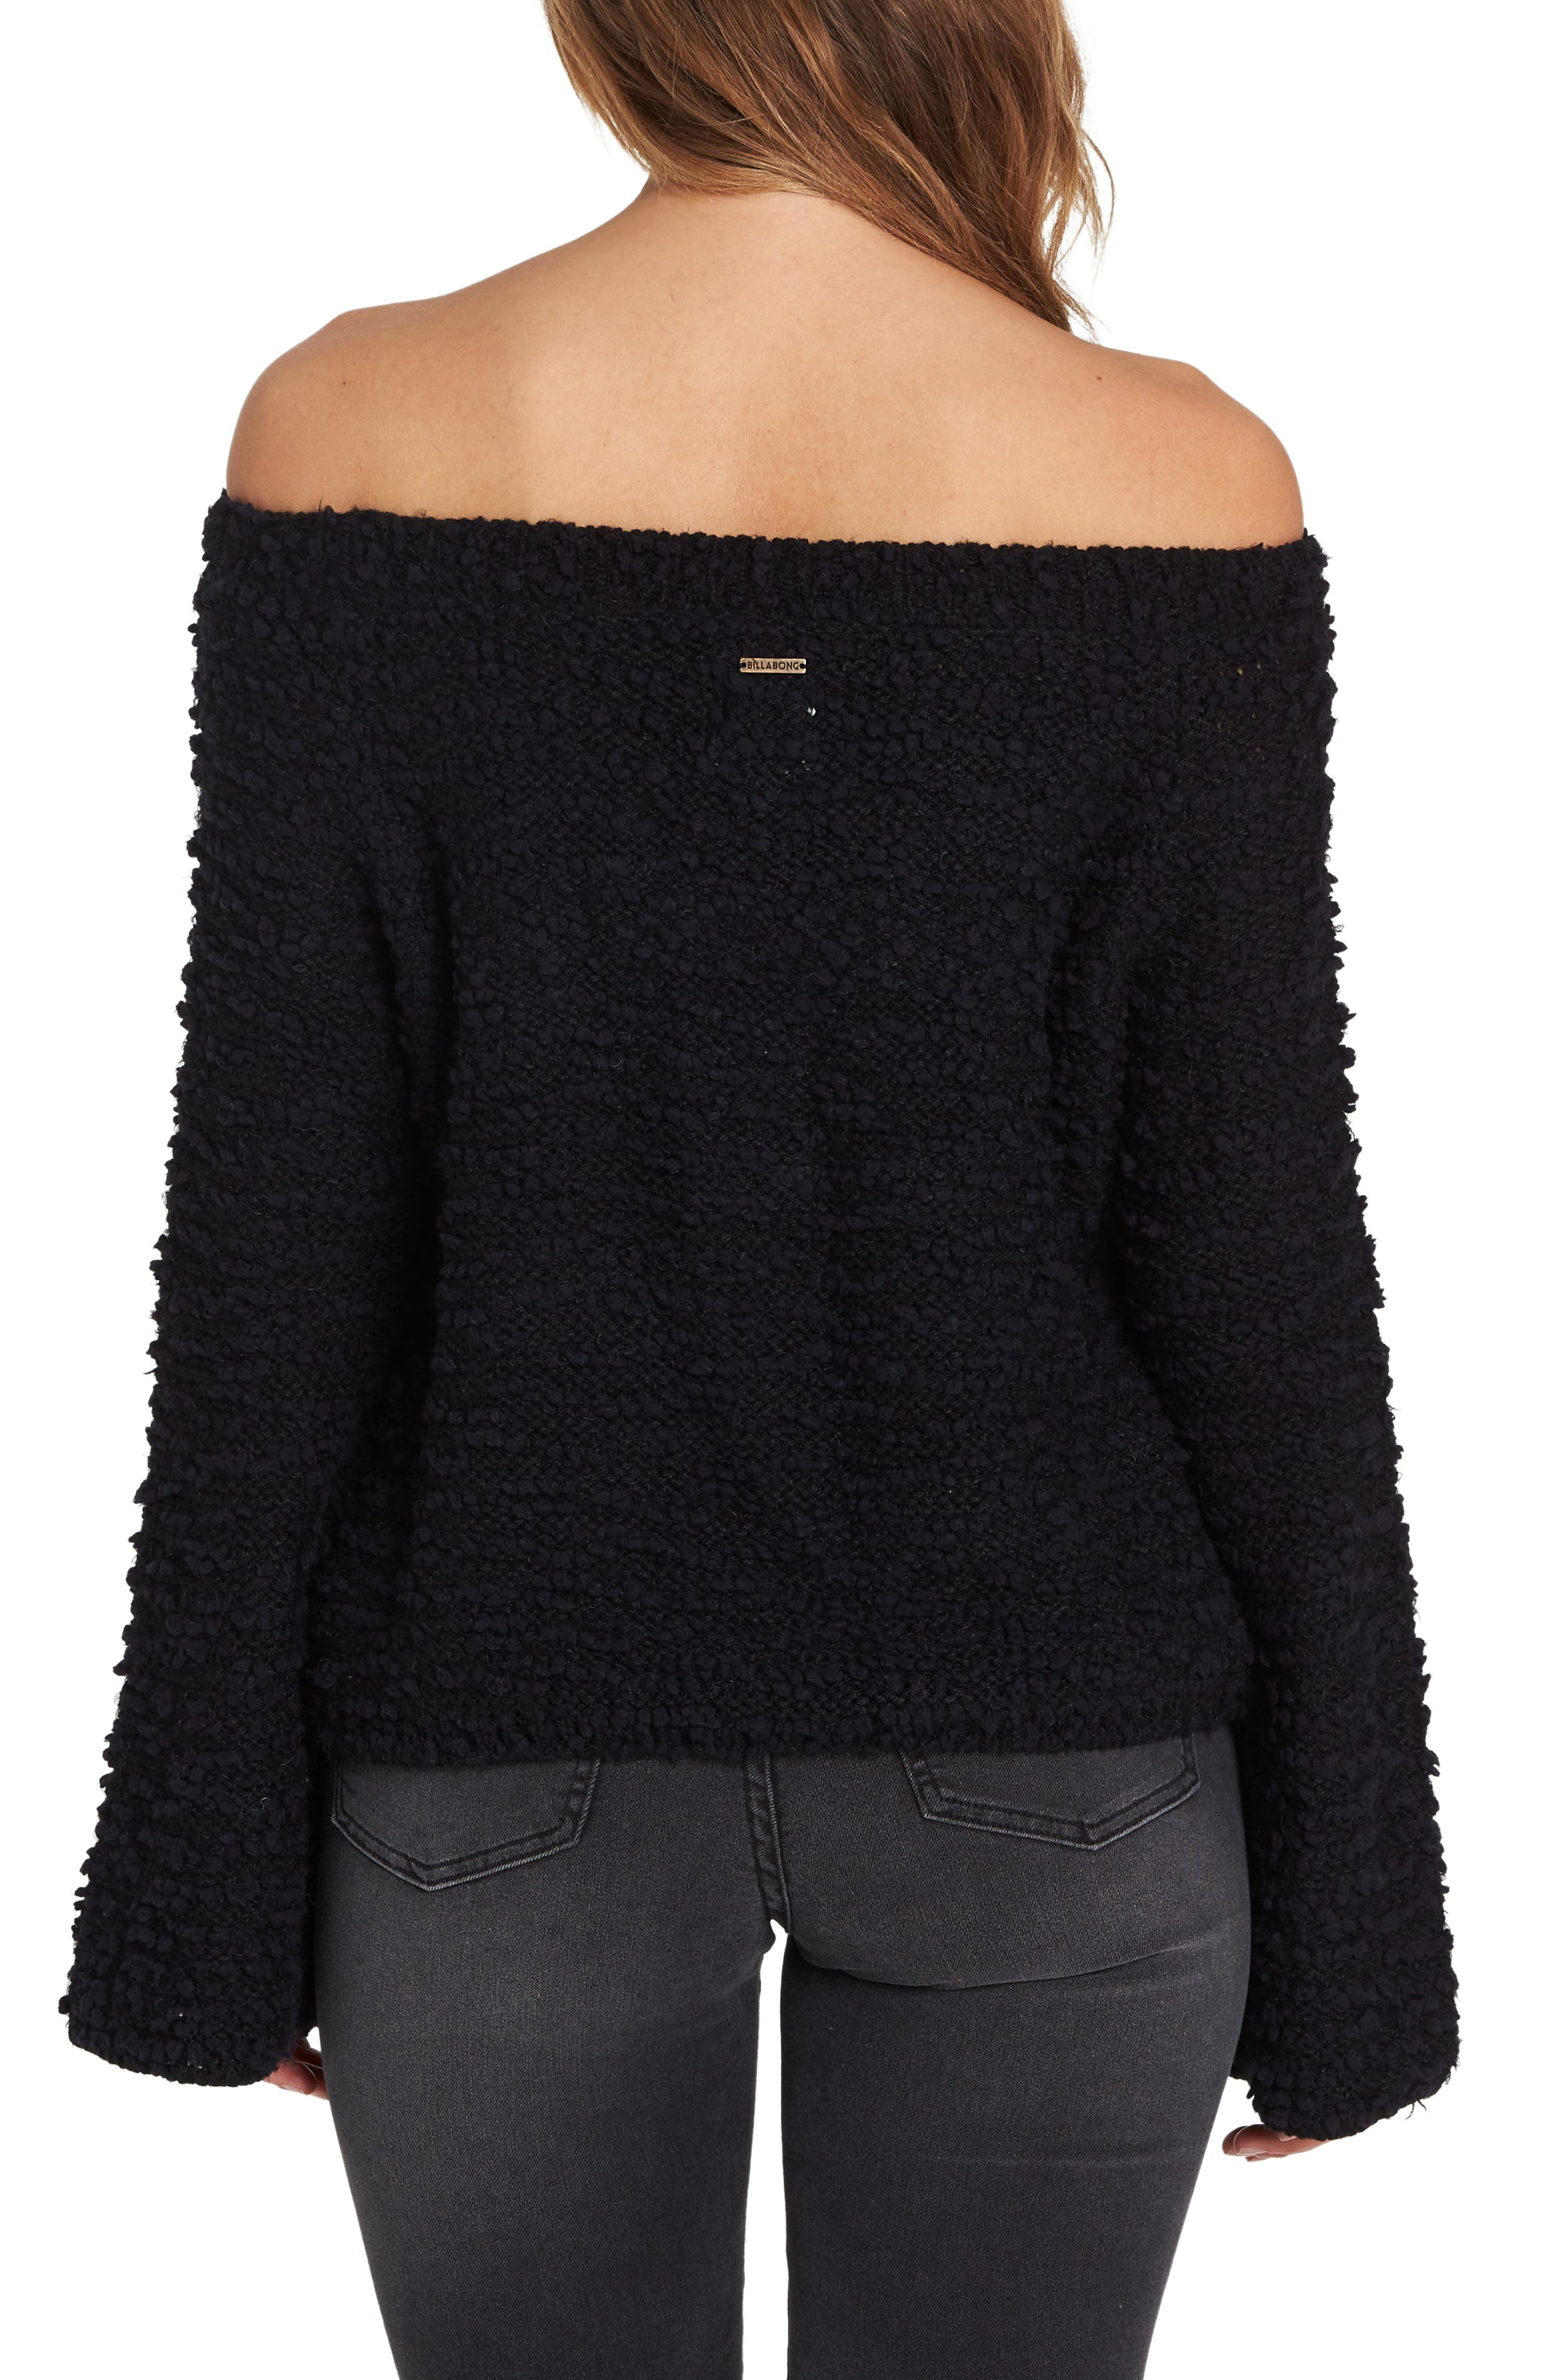 BILLABONG, Off the Beat Off the Shoulder Sweater, Alternate thumbnail 2, color, 001